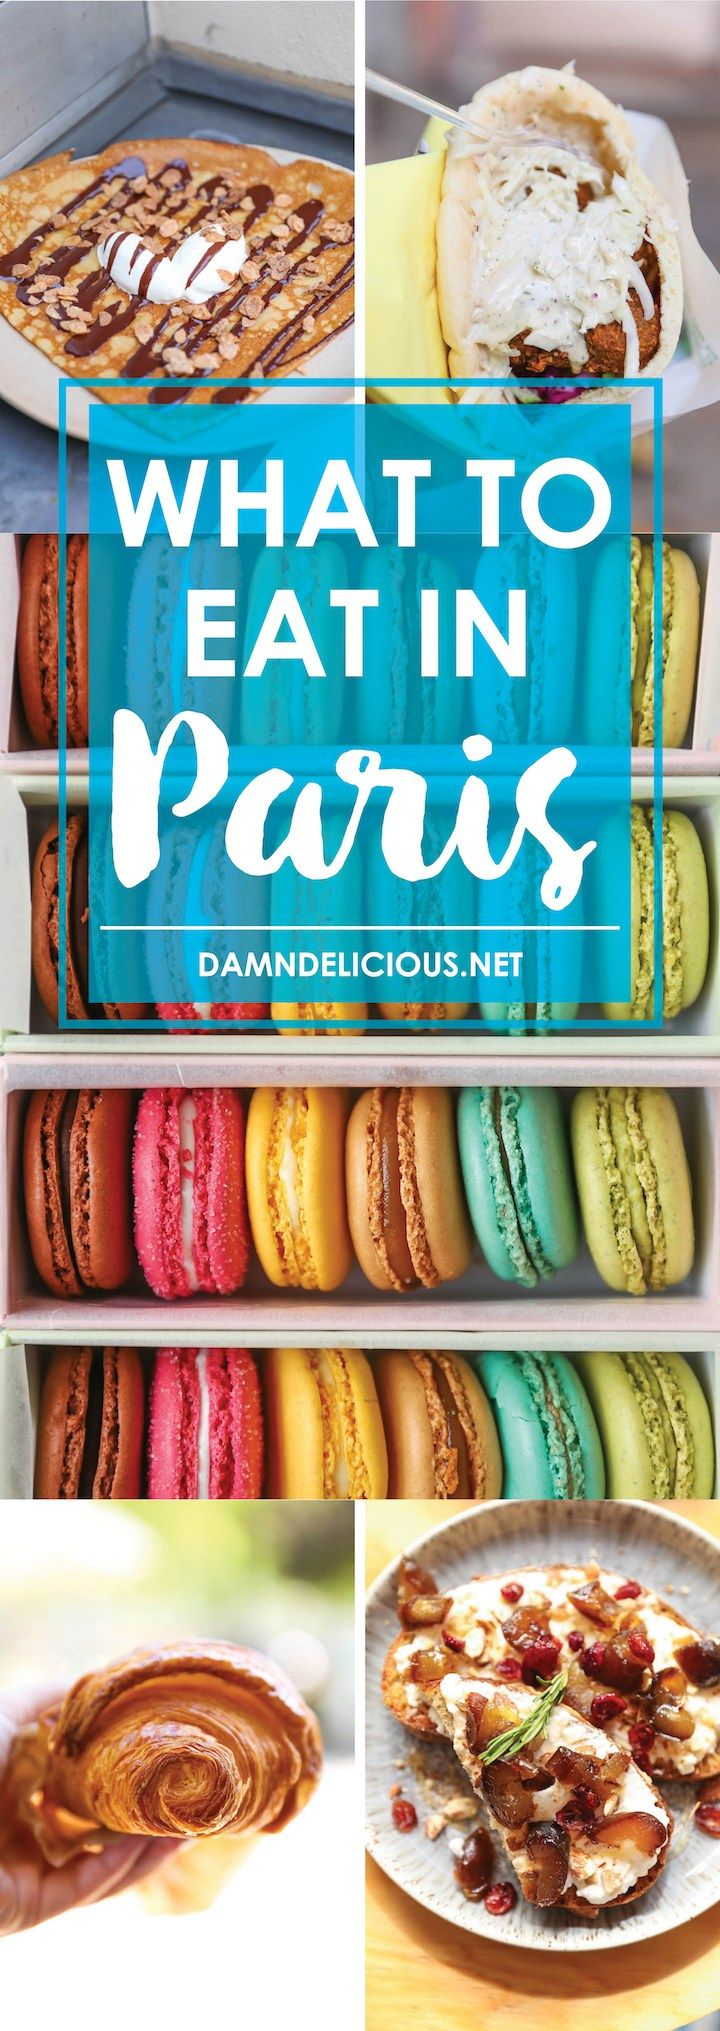 What to Eat in Paris